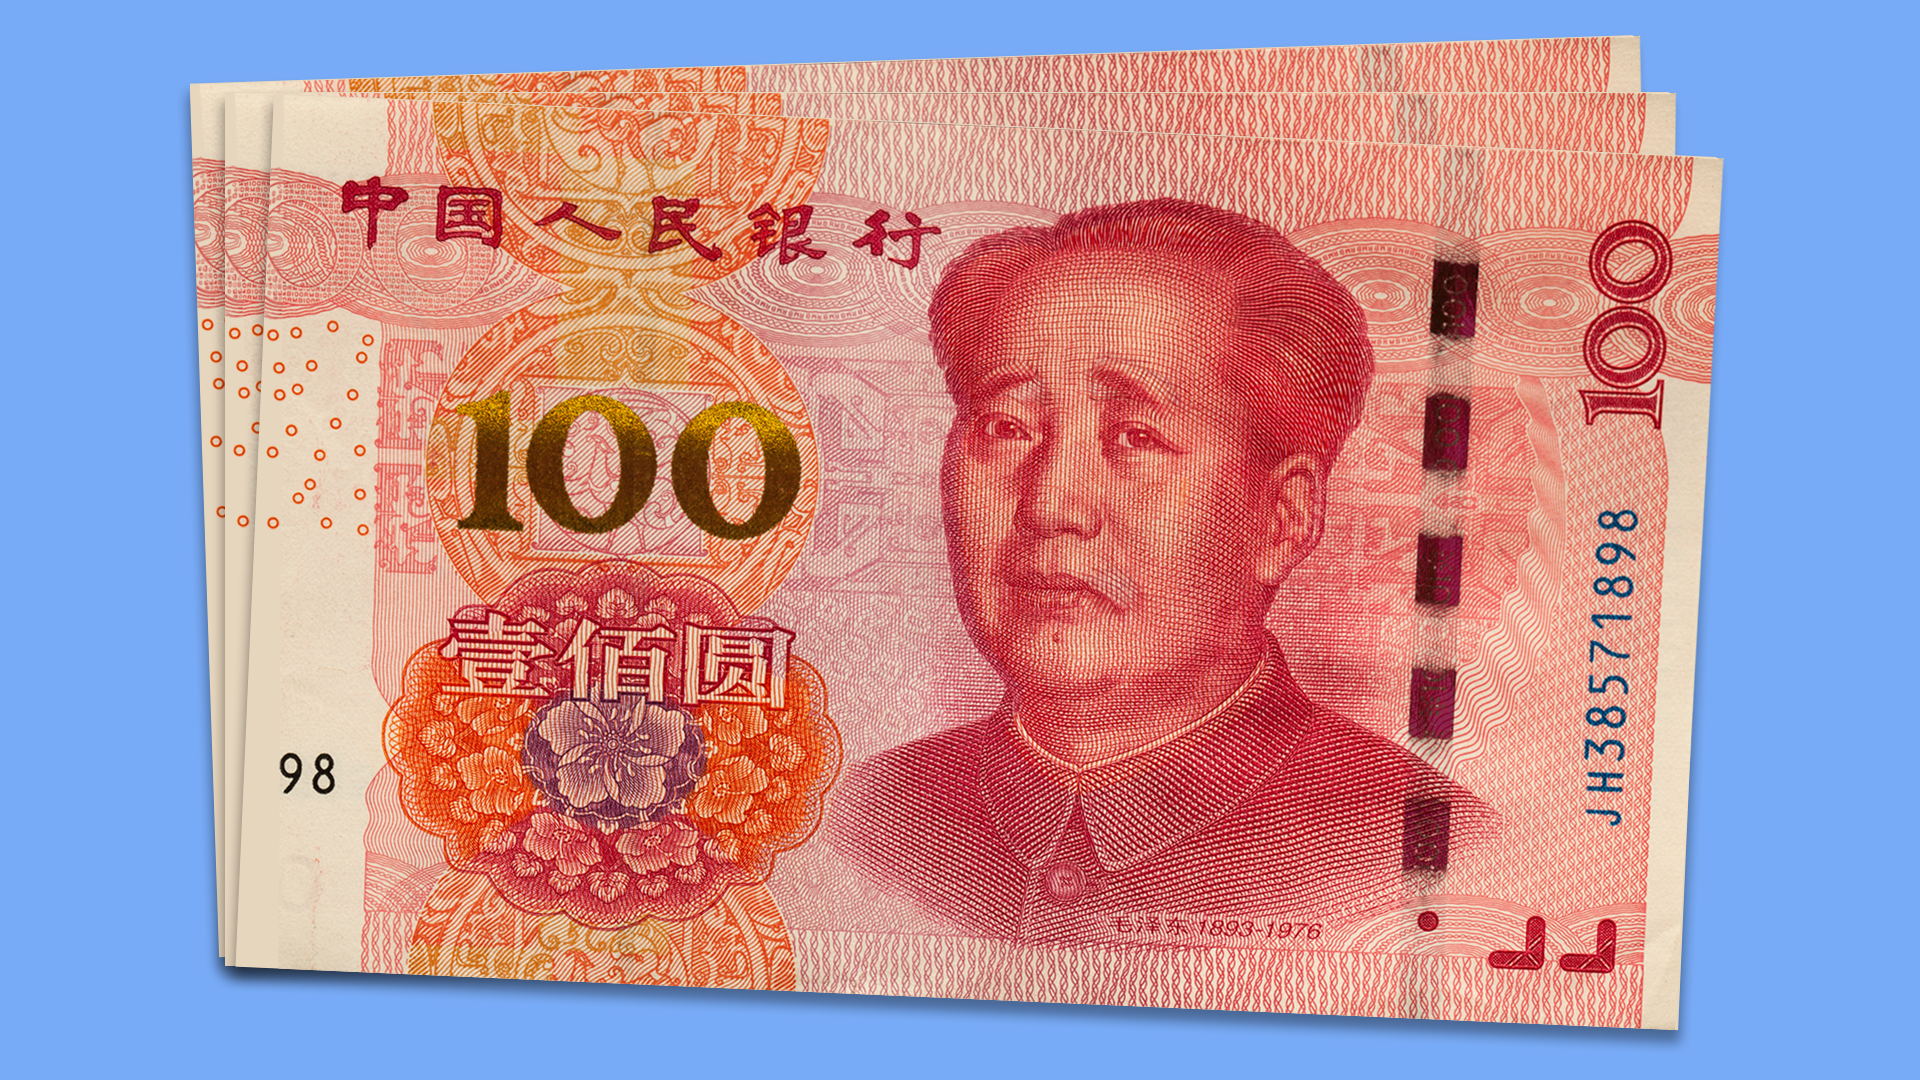 Illustration of Chinese yuan bill with a very unhappy Mao on it